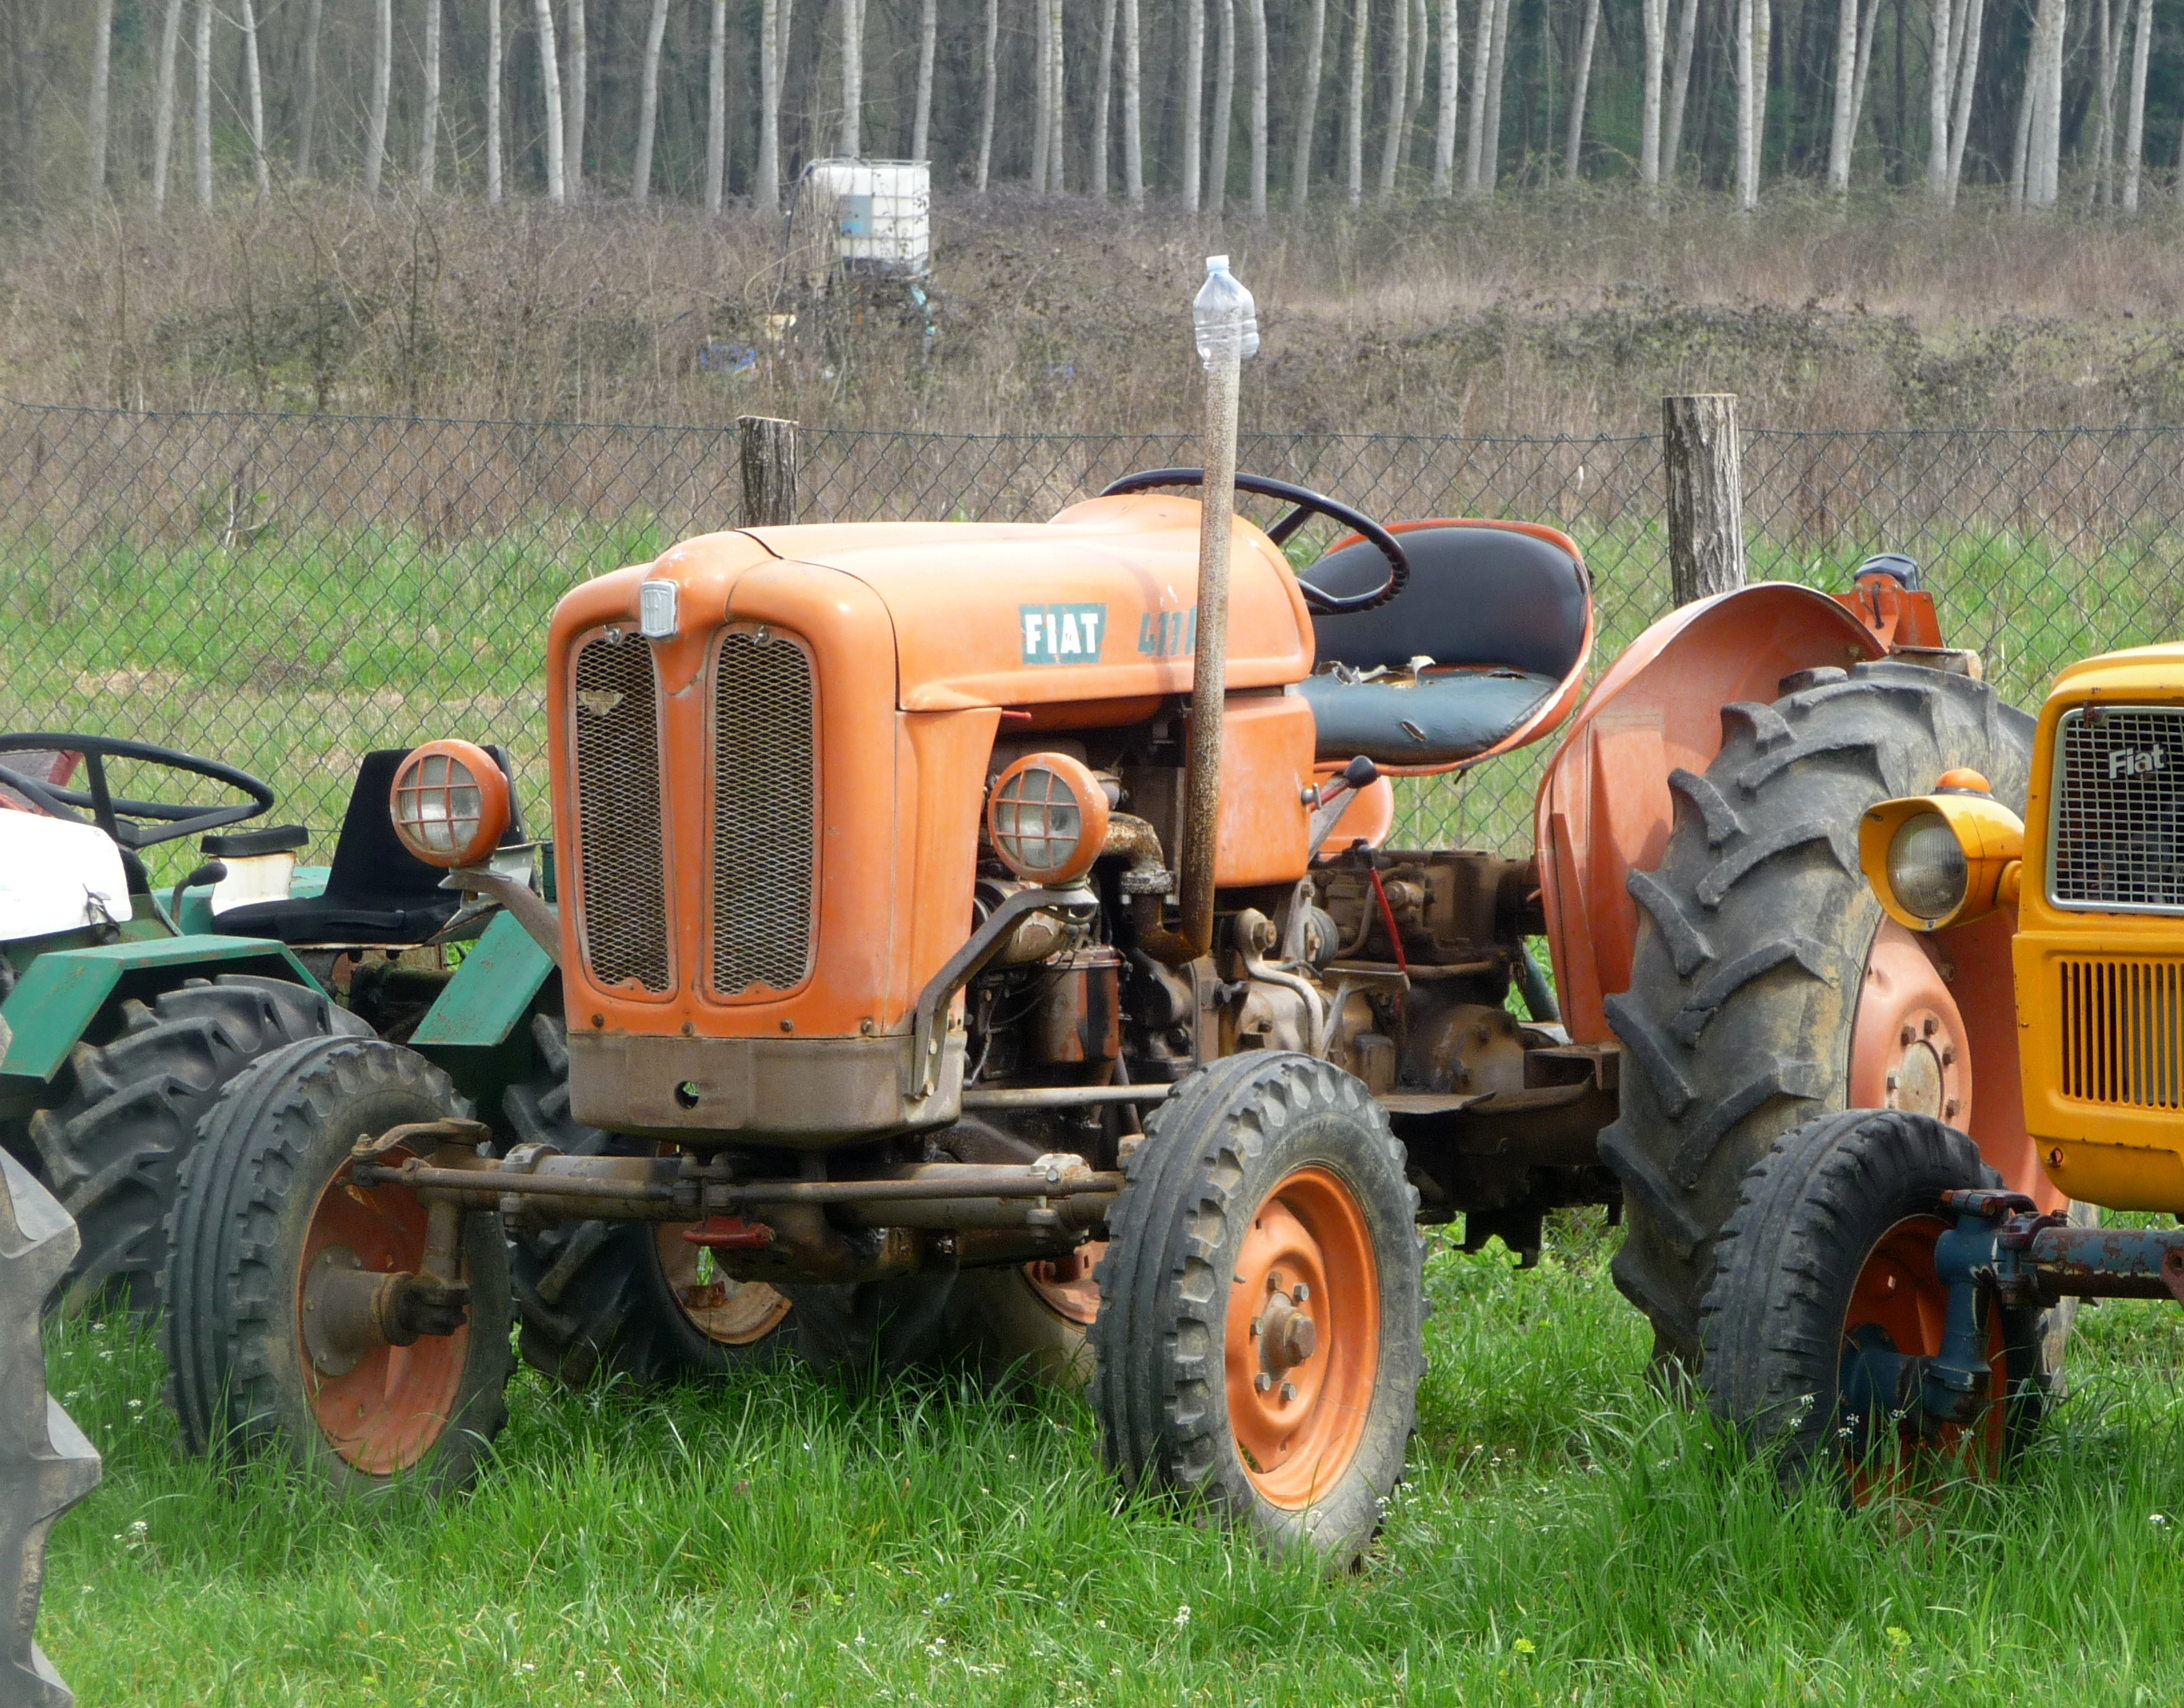 Download Image 2777 X 2172. tractordata fiat 411r tractor photos  information tractordata fiat 411r tractor photos information